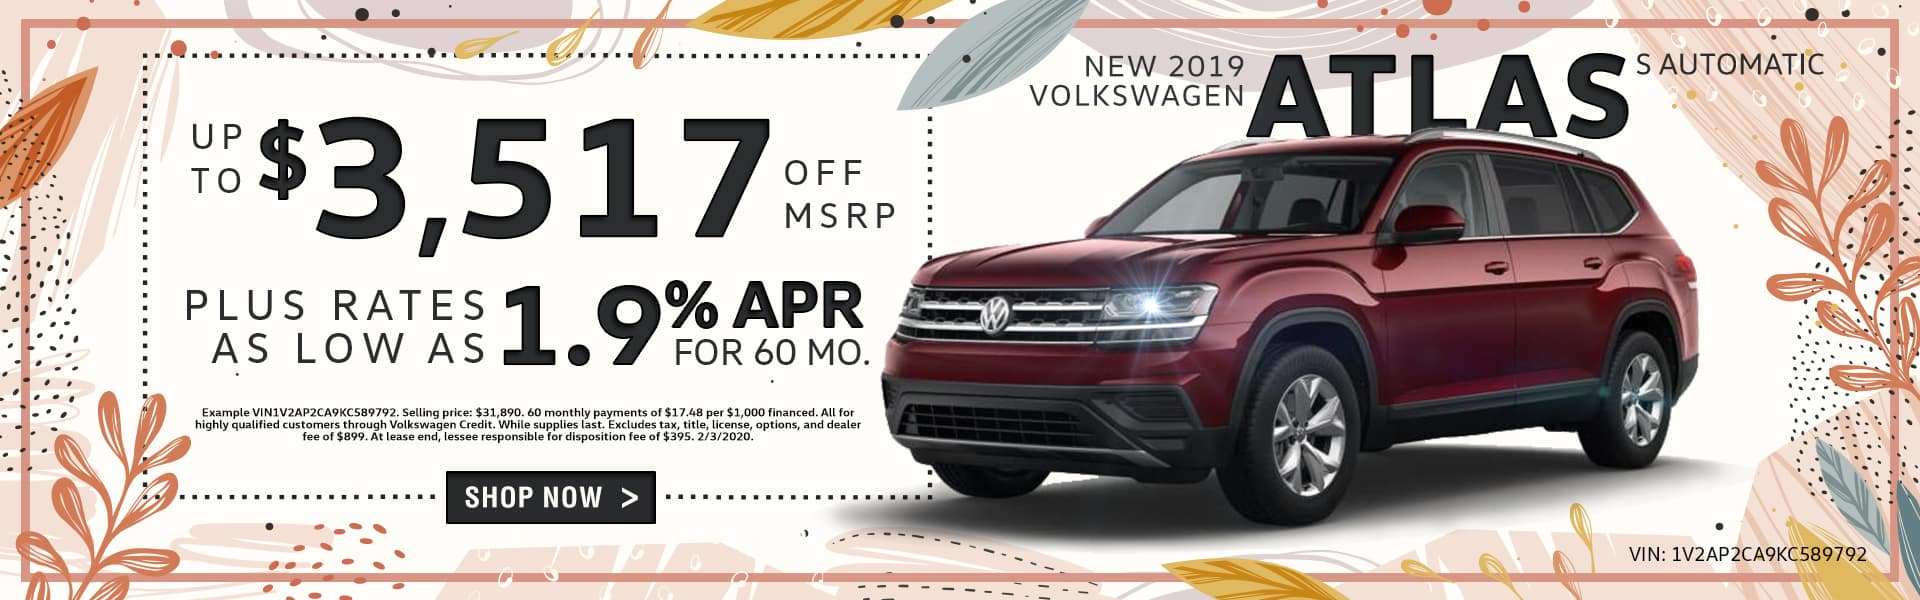 New 2019 Volkswagen Atlas S Automatic | Up To $3,517 Off MSRP Plus Rates As Low As 1.9% APR For 60 Months